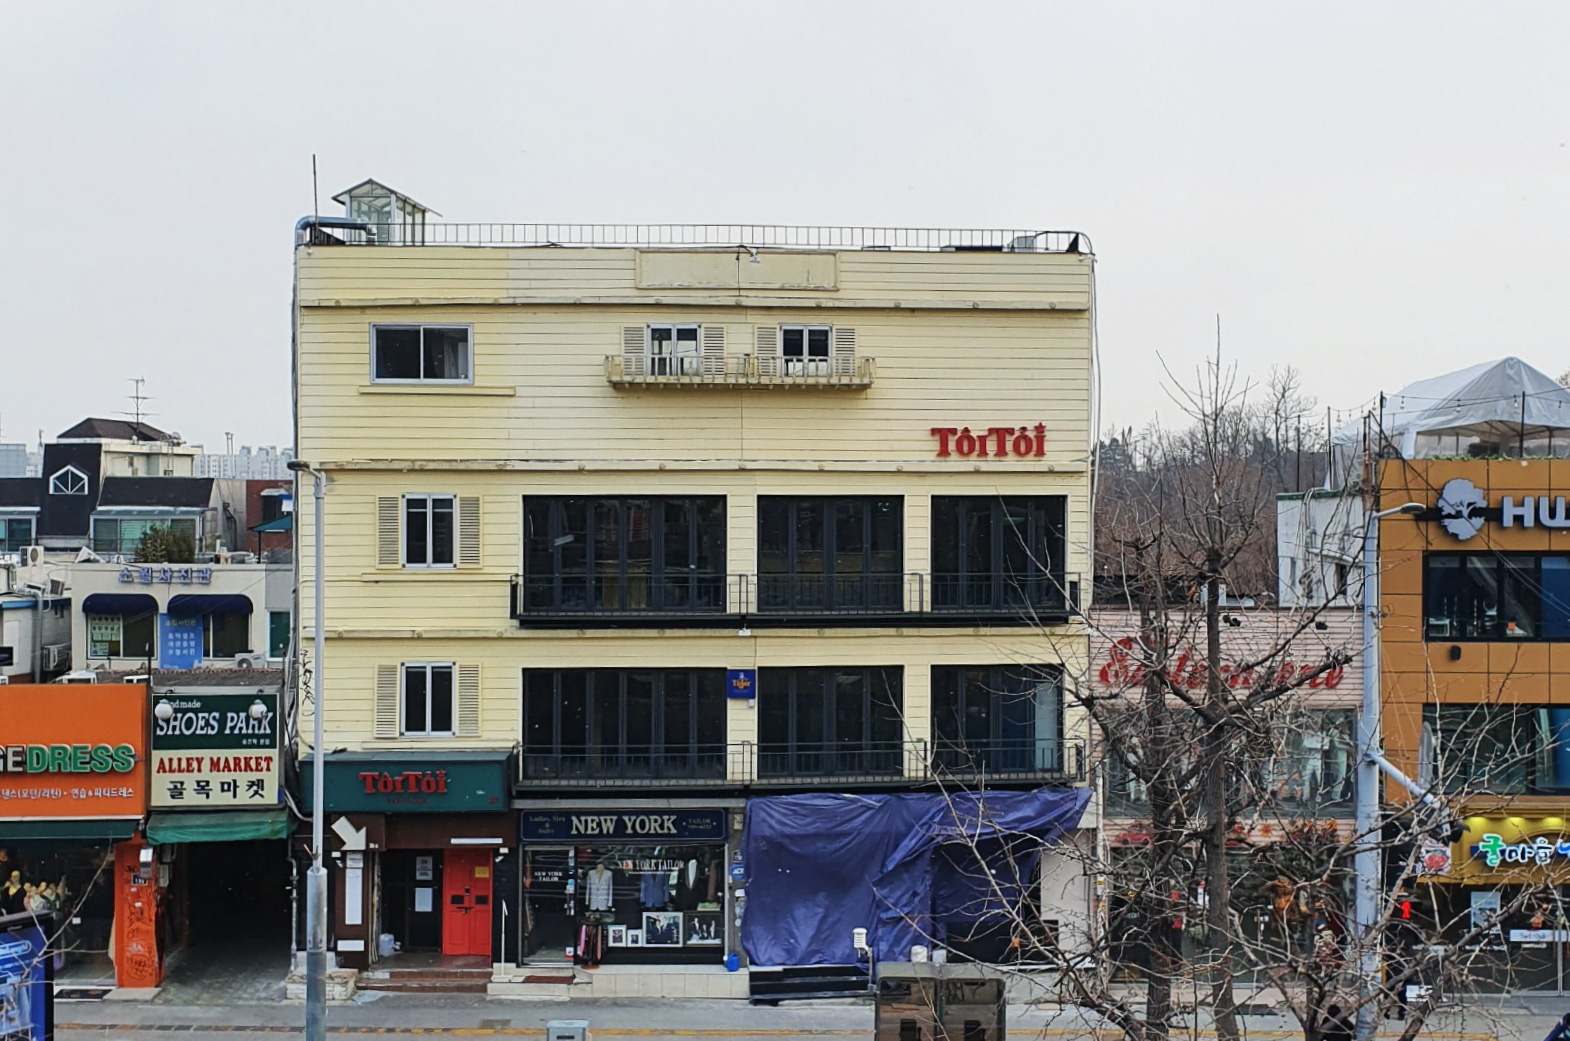 Toi Toi, a Vietnamese restaurant which appeared briefly in an episode of 'Itaewon Class,' is seen in this photo. This now-closed restaurant served Vietnamese cuisine such as pho, spring rolls, banh mi, and Vietnamese coffee. Photo: Le Dung / Tuoi Tre